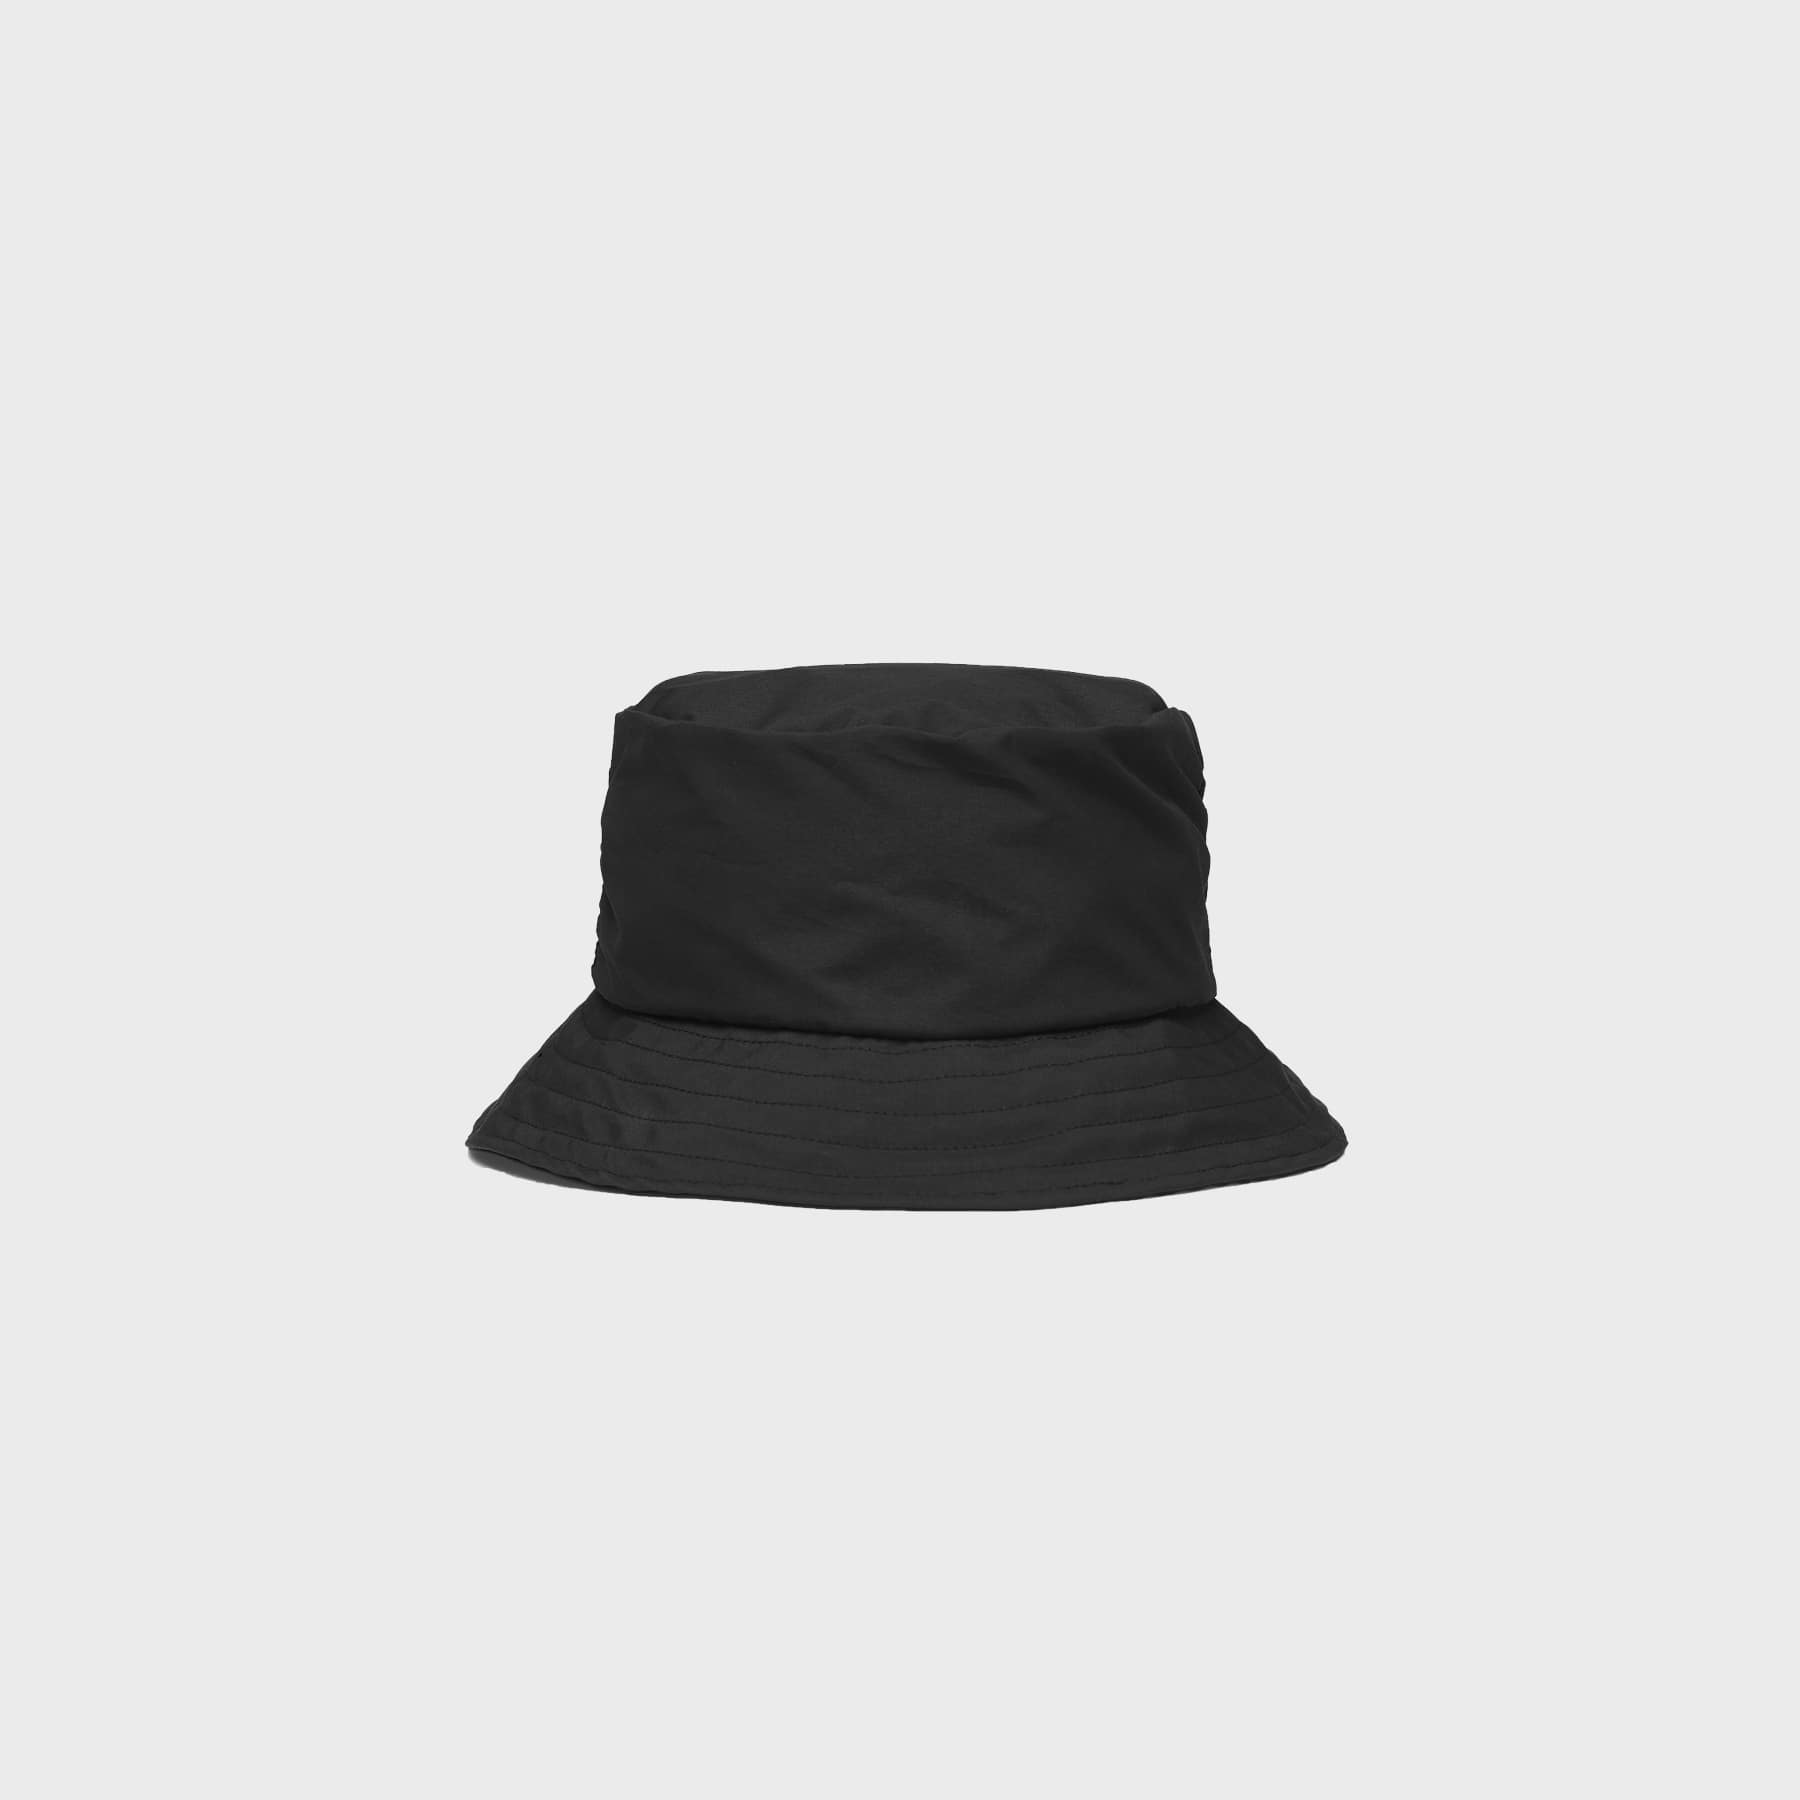 waterproof bucket (black)